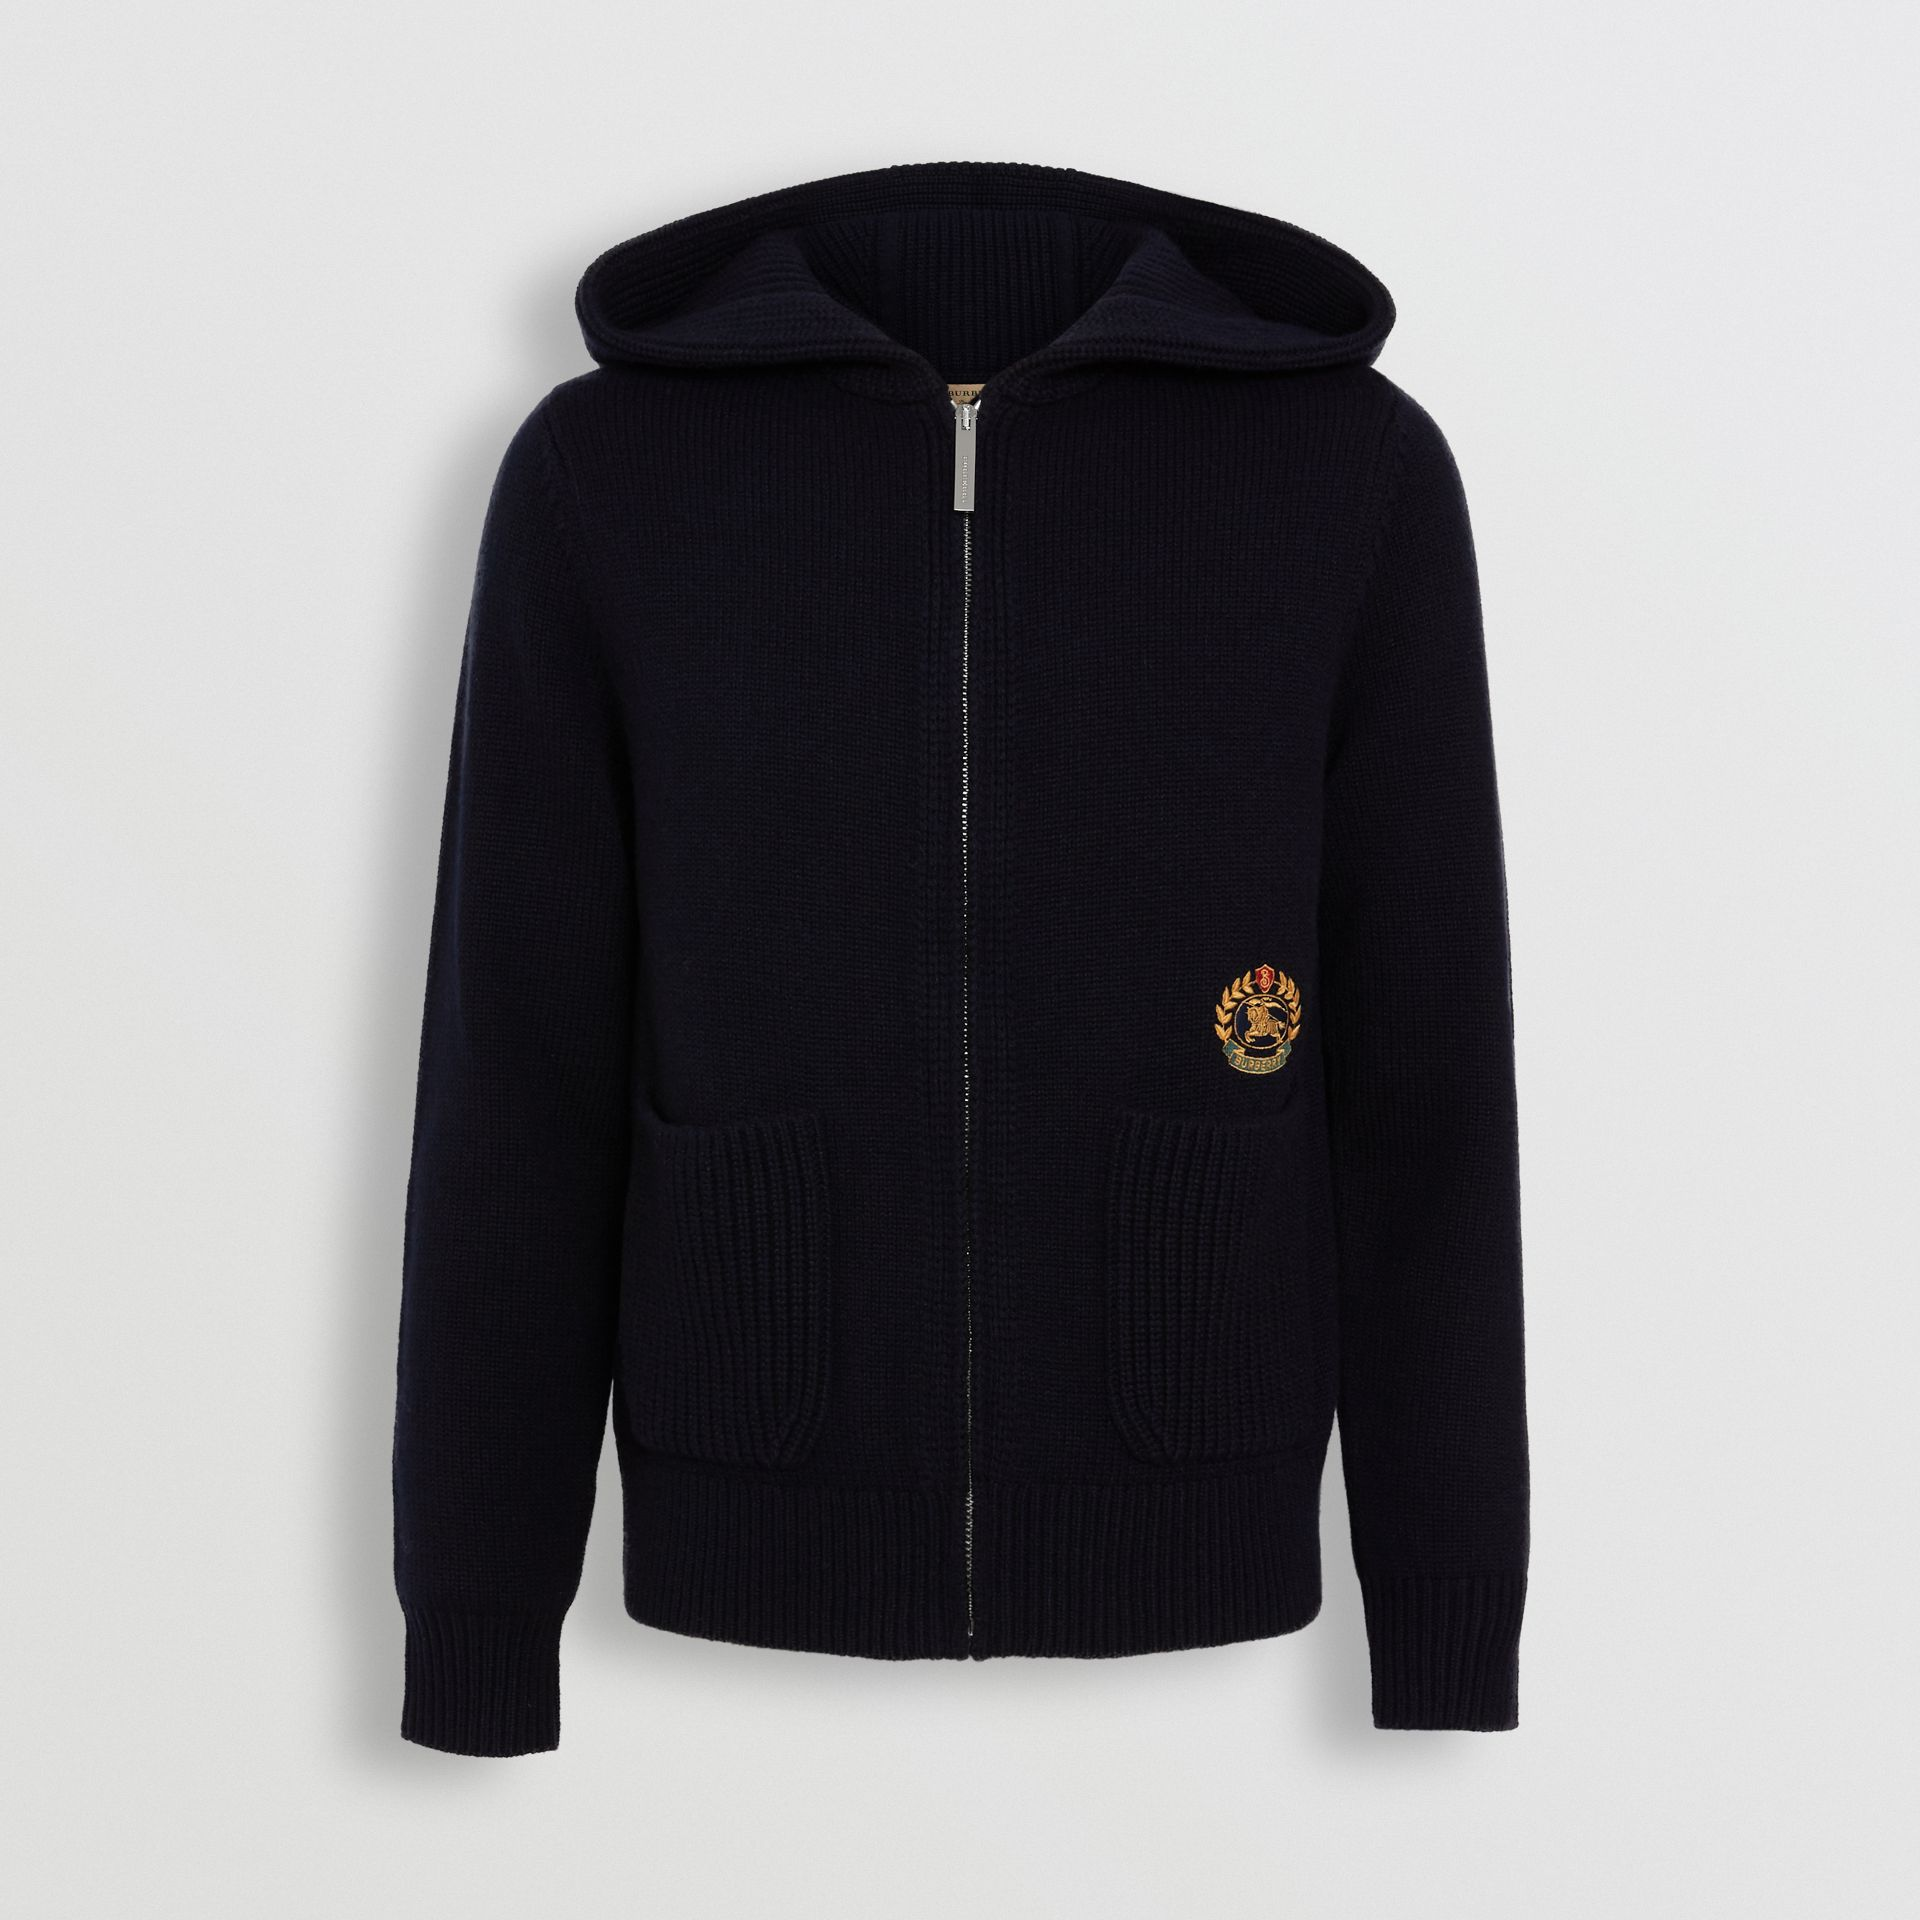 Embroidered Crest Cashmere Hooded Top in Navy - Women | Burberry - gallery image 3